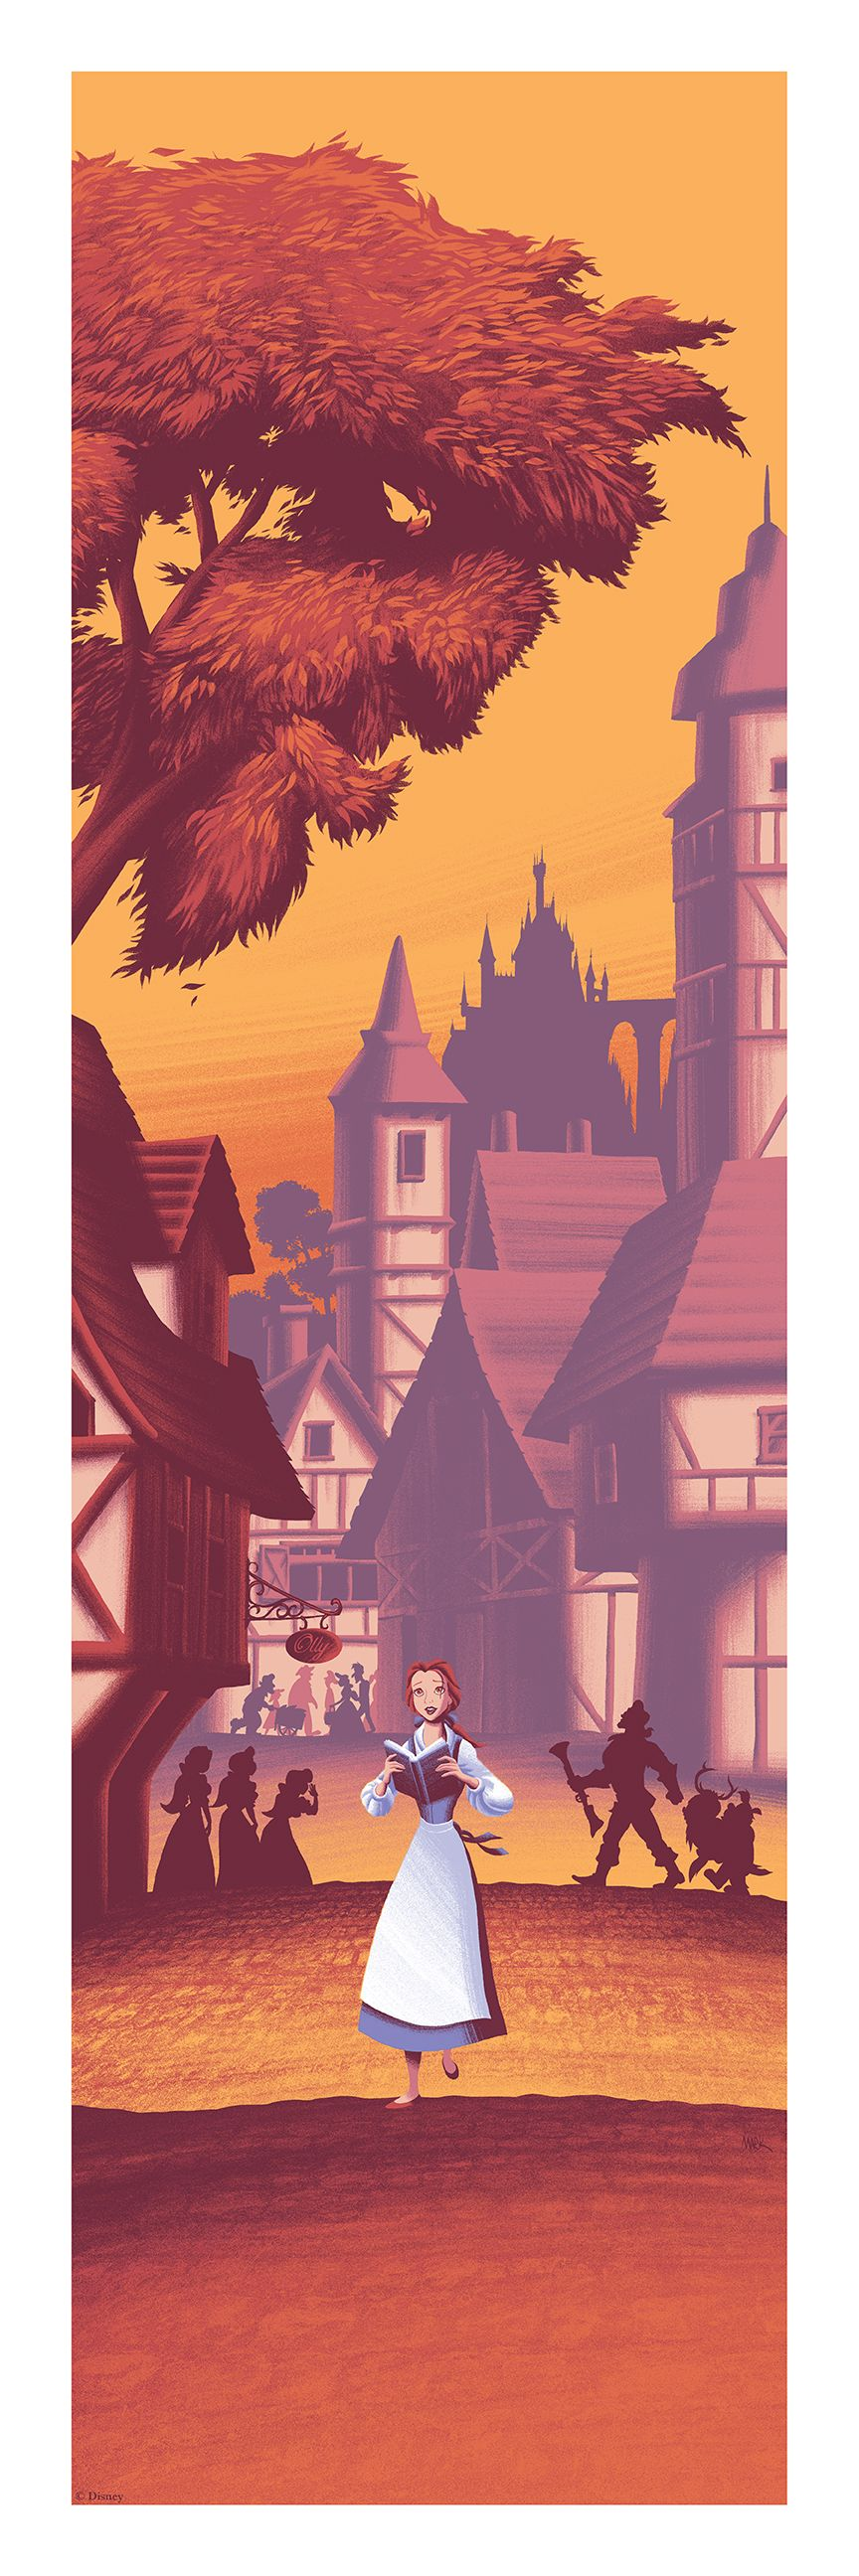 Latest Funny Girl More Arty D23 Expo Exlusives: Englert Does Beauty and the Beast, Shorts Collection Handbills, and Eric Goldberg More Arty D23 Expo Exclusives: Englert Does Beauty and the Beast, Shorts Collection Handbills, and Eric Goldberg | Disney Insider | Articles 9